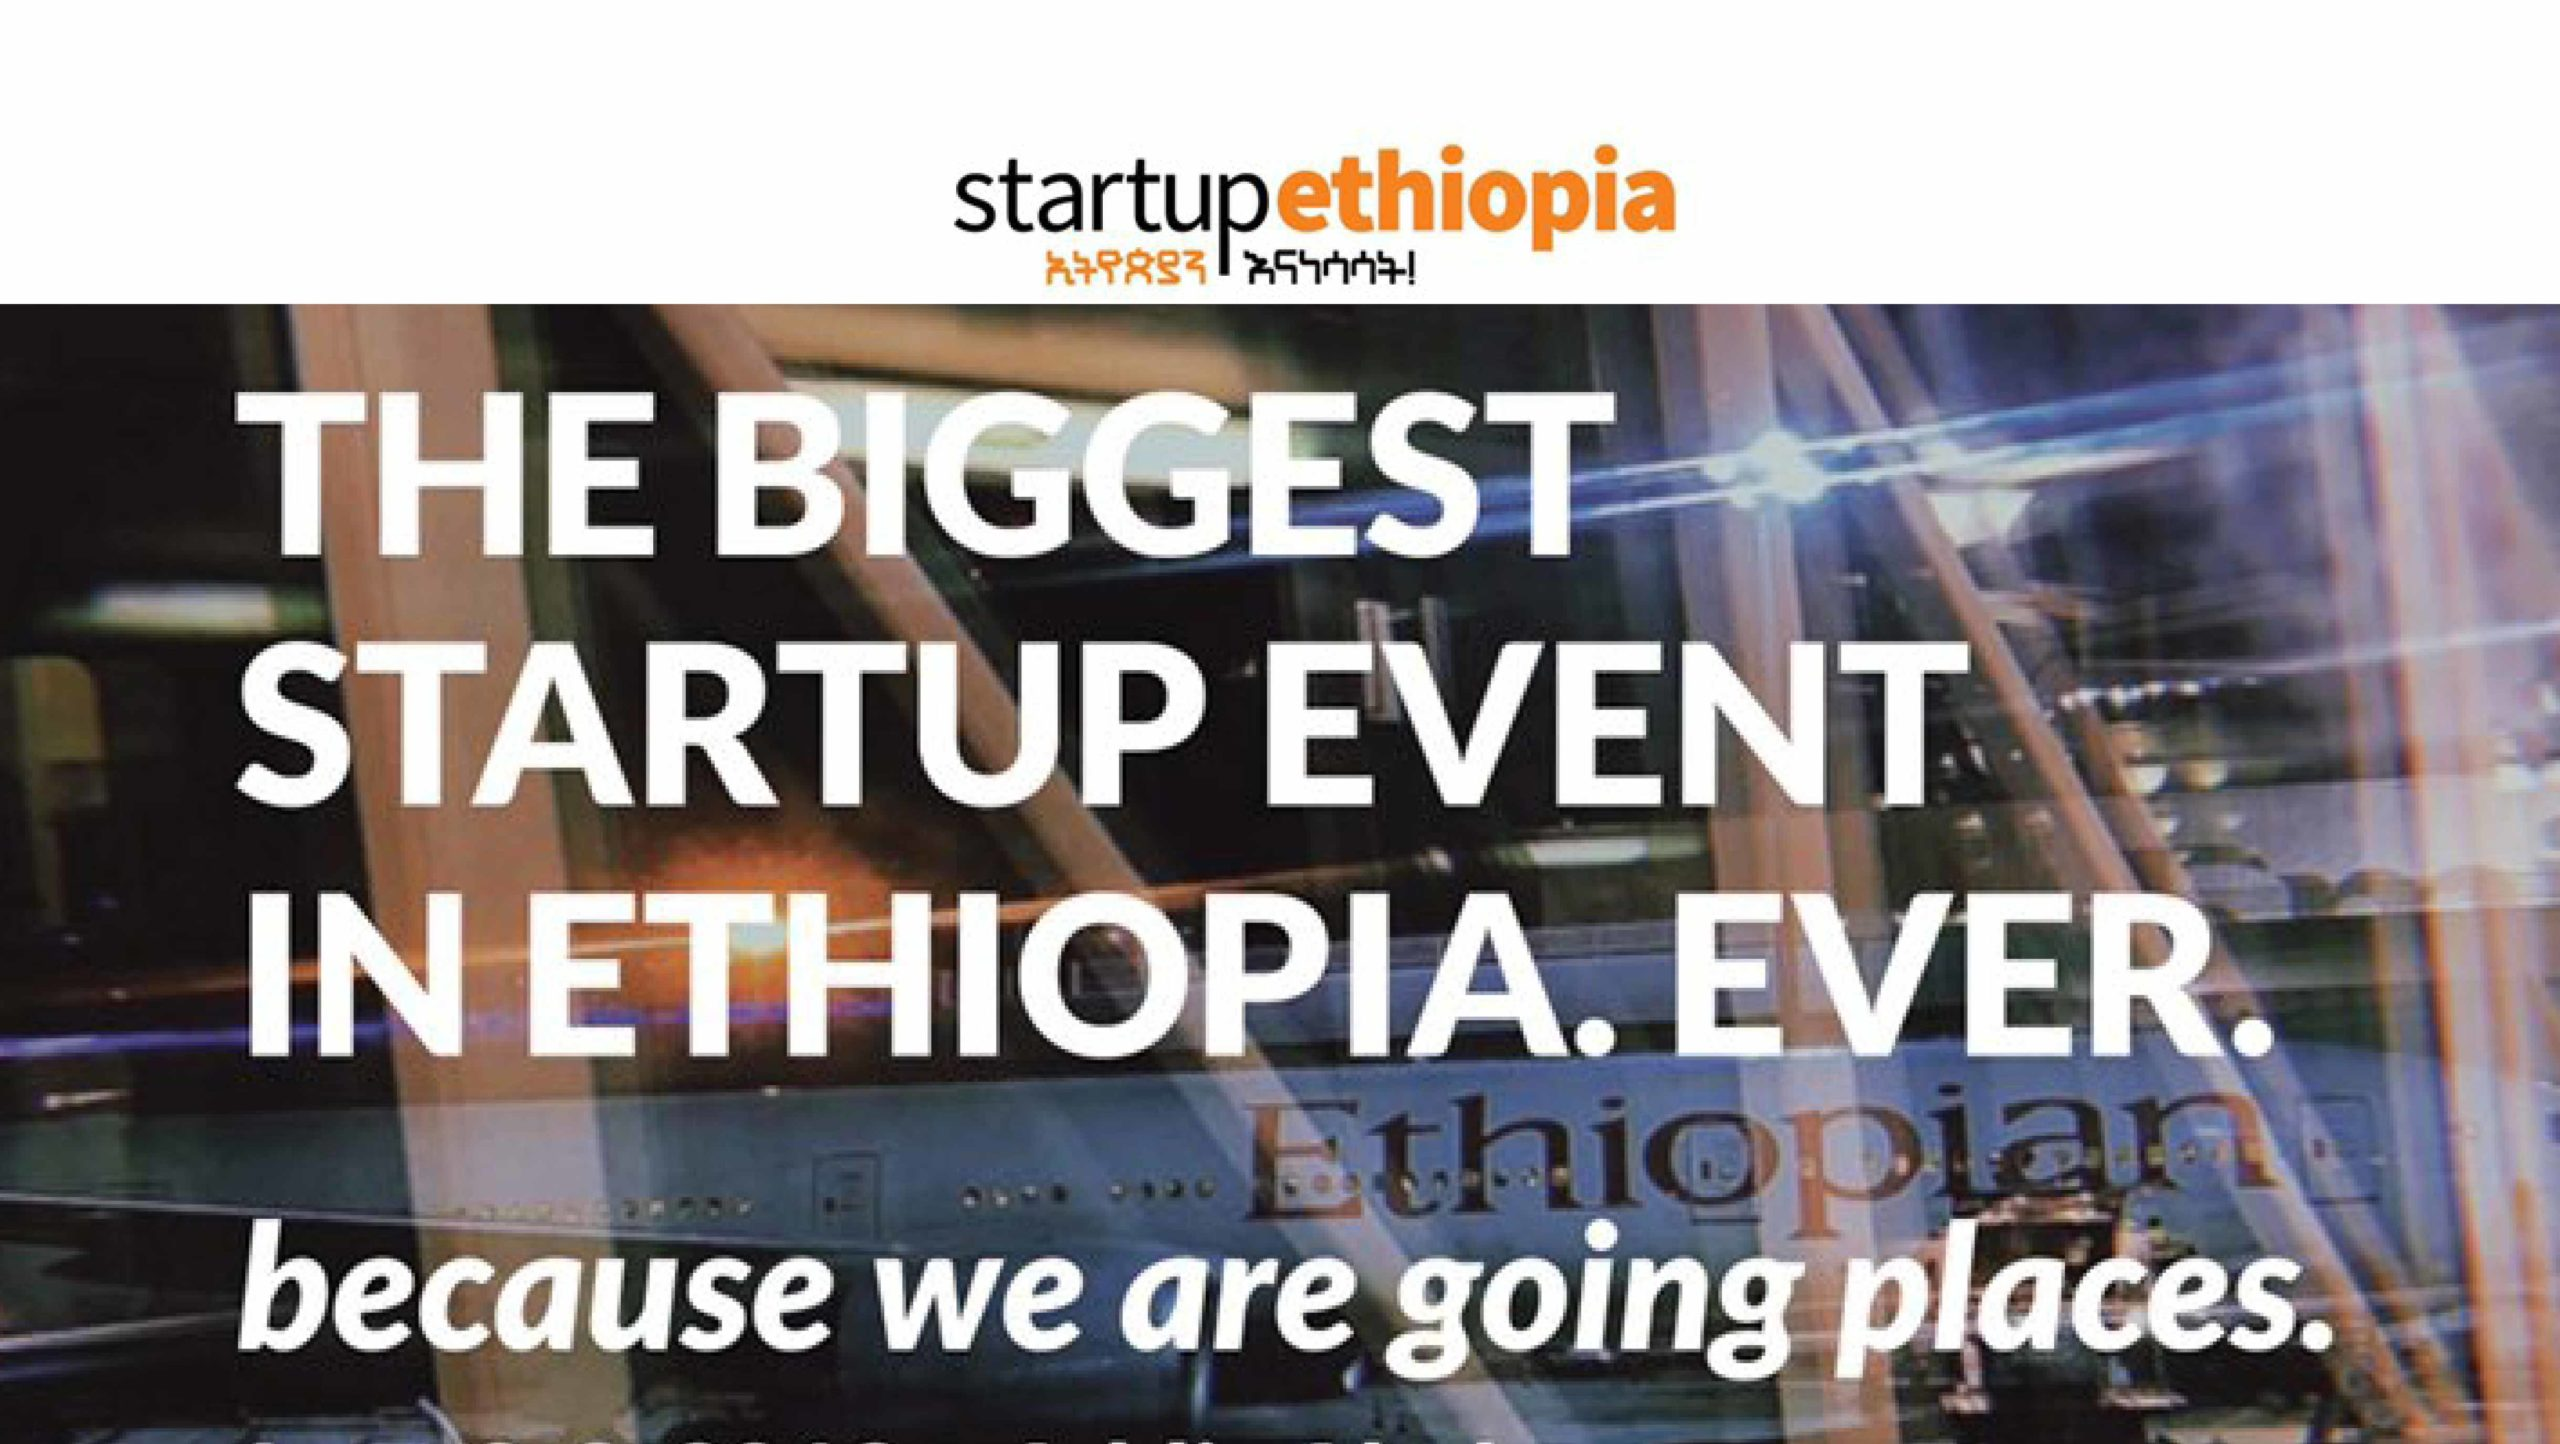 Startup Ethiopia. The biggest startup event in Ethiopia. Ever. Because we are going places. Ad for entrepreneurship 2019 event